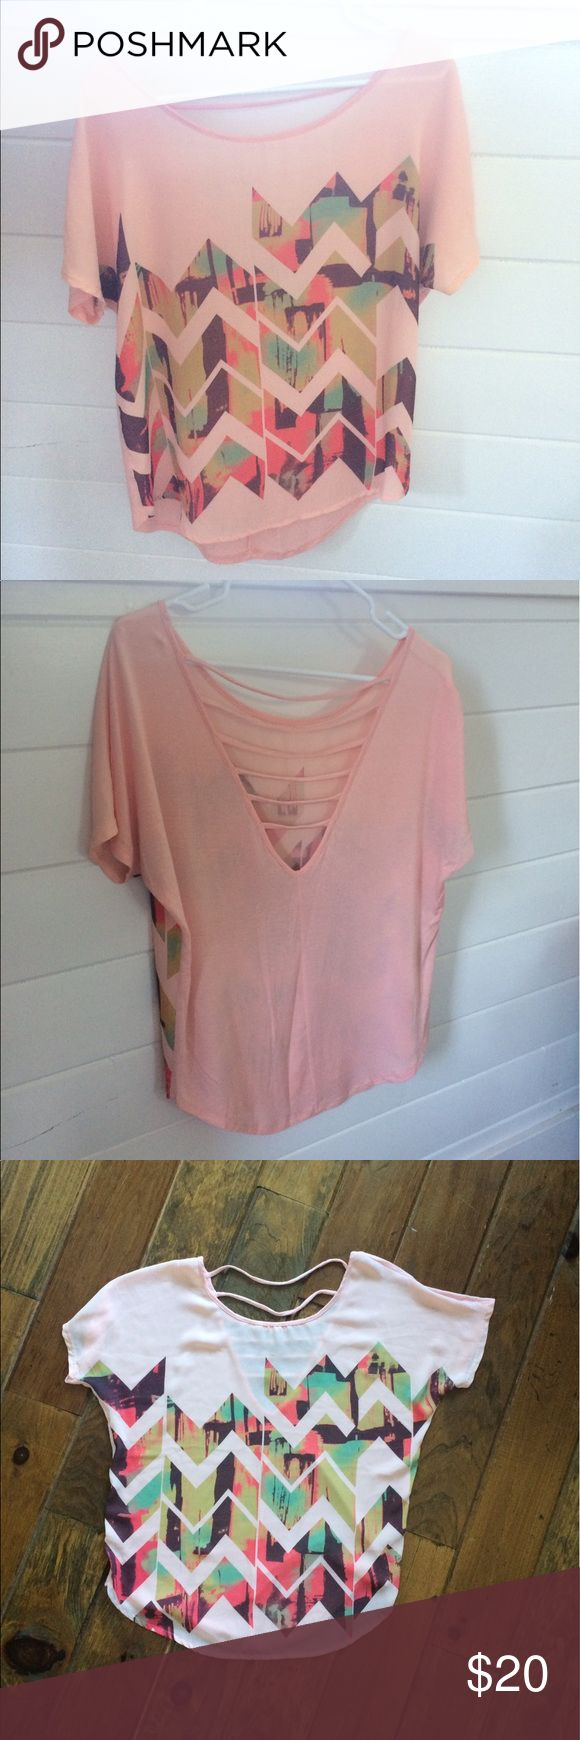 {Boheme} Chevron Top Super lightweight top, perfect for summer weather. Really cute back! Only been worn once - great condition! Boheme Tops Tees - Short Sleeve